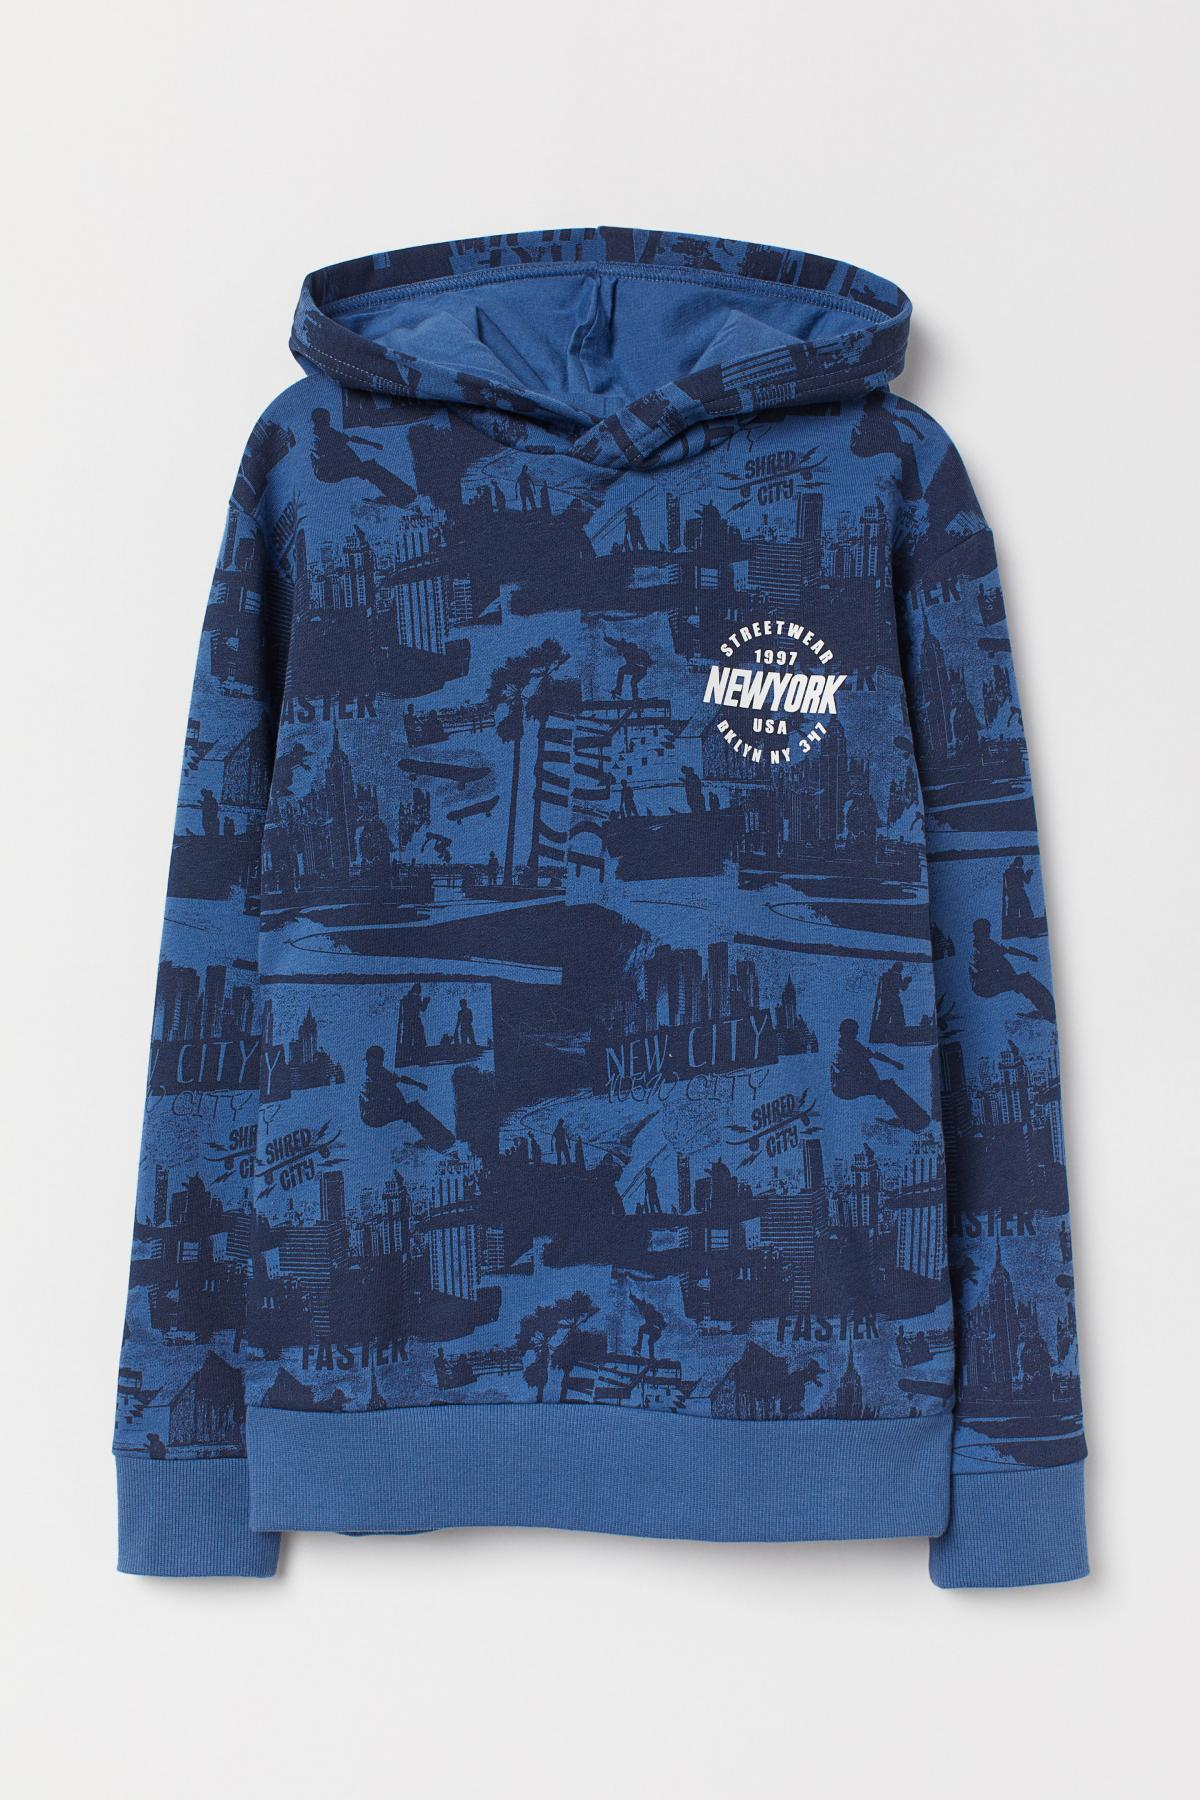 buy, print, hoody, h&m, kid's, 0708285009, blue, color, Kyiv, deliver, Ukraine, price from 17.7 $